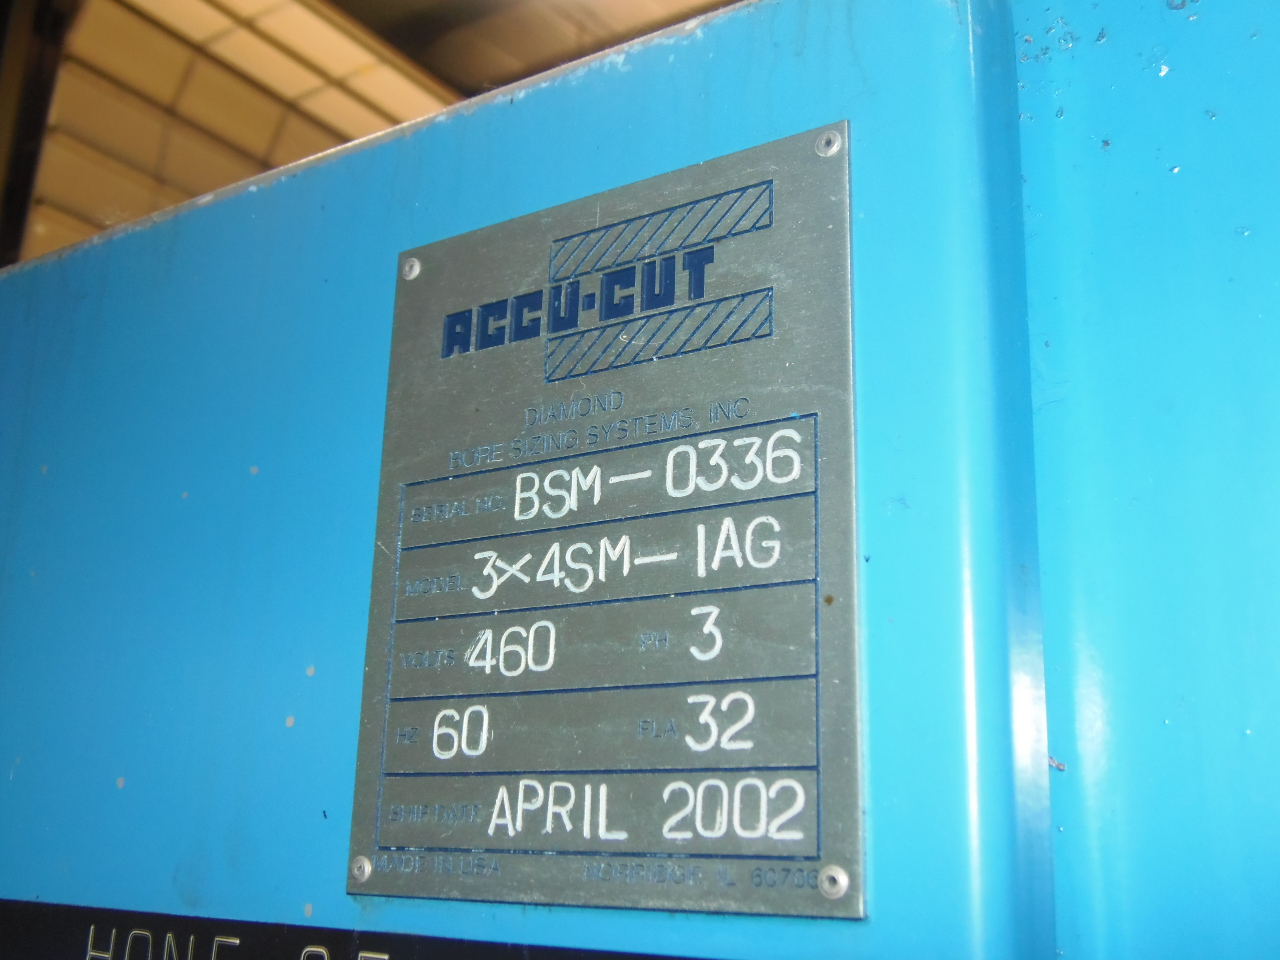 ACCU-CUT 3X4SM-1AE, 12 SPINDLES, 3 CUTTING STATIONS, ETAMIC CM2 MEASURING SYSTEM, NEW 2002